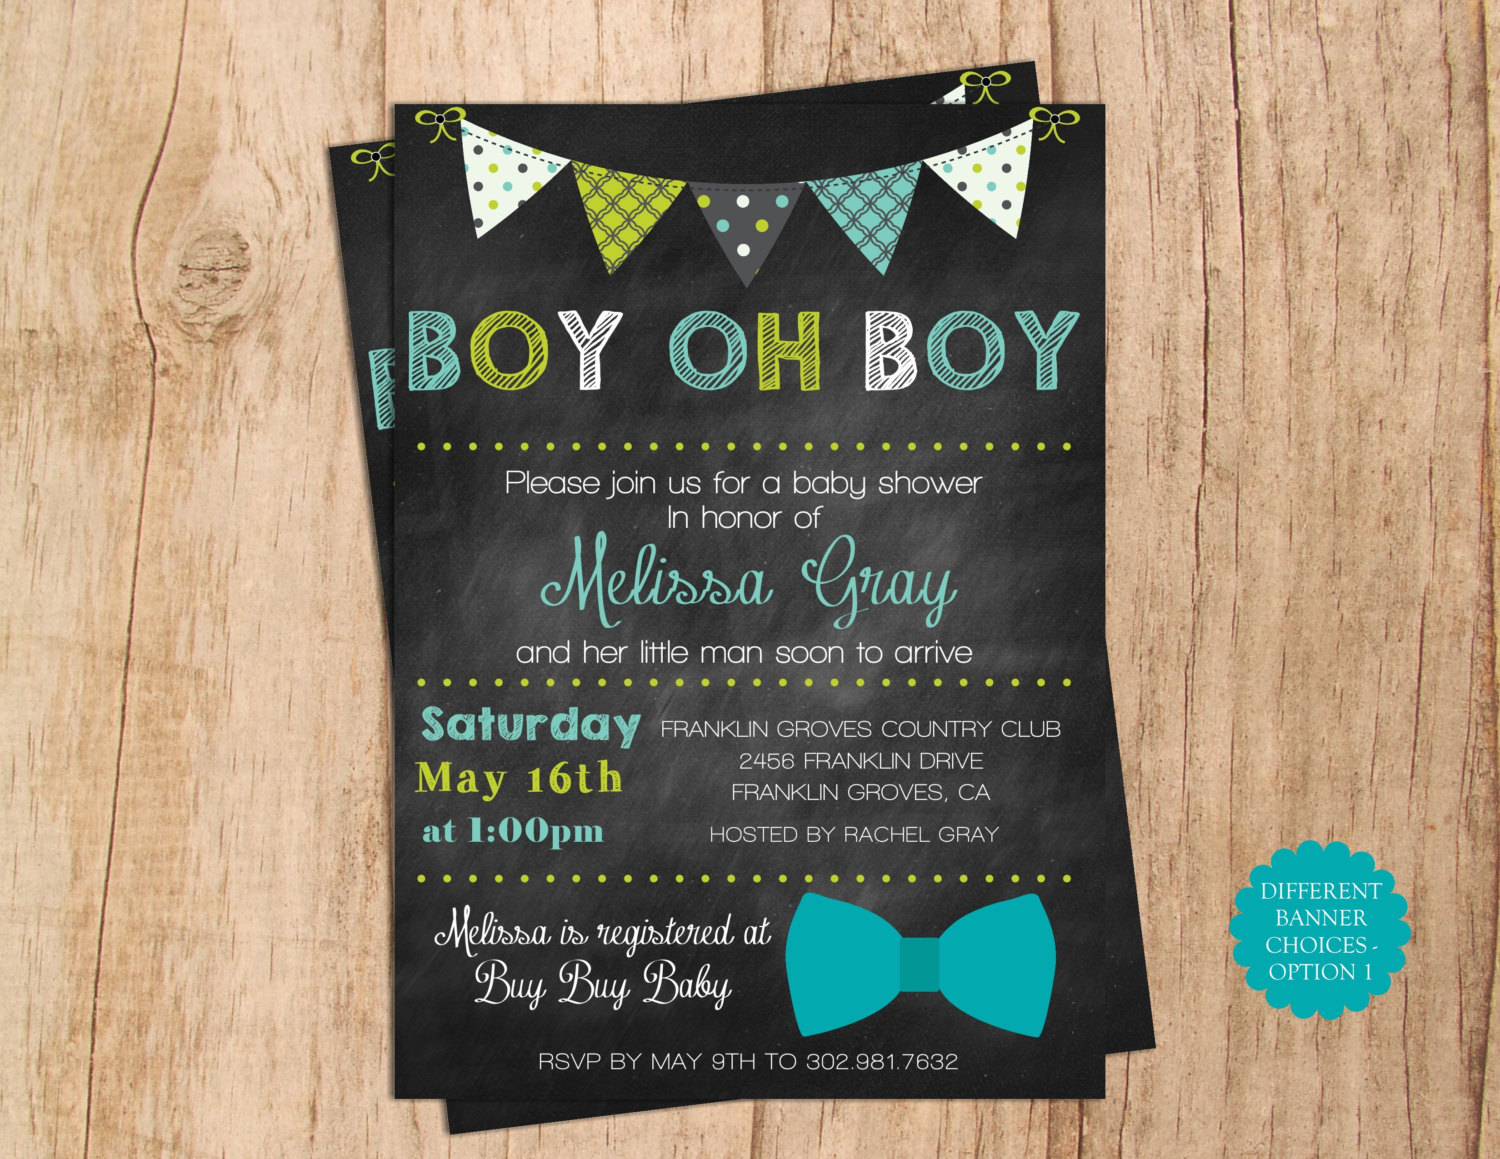 Boy Oh Boy Baby Shower Invitation